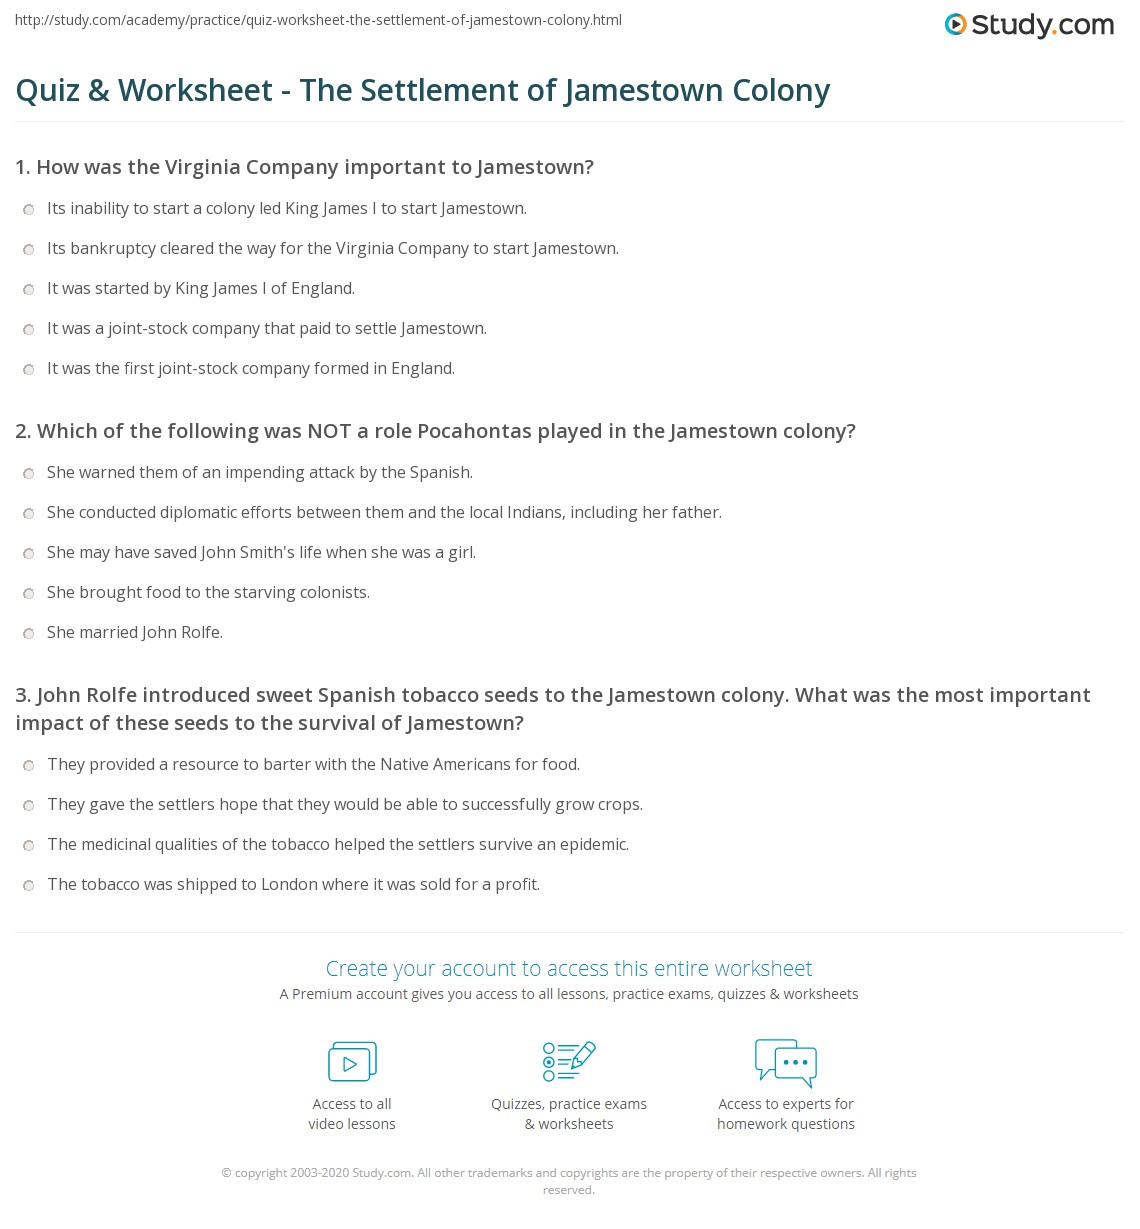 worksheet Jamestown Worksheet quiz worksheet the settlement of jamestown colony study com print worksheet